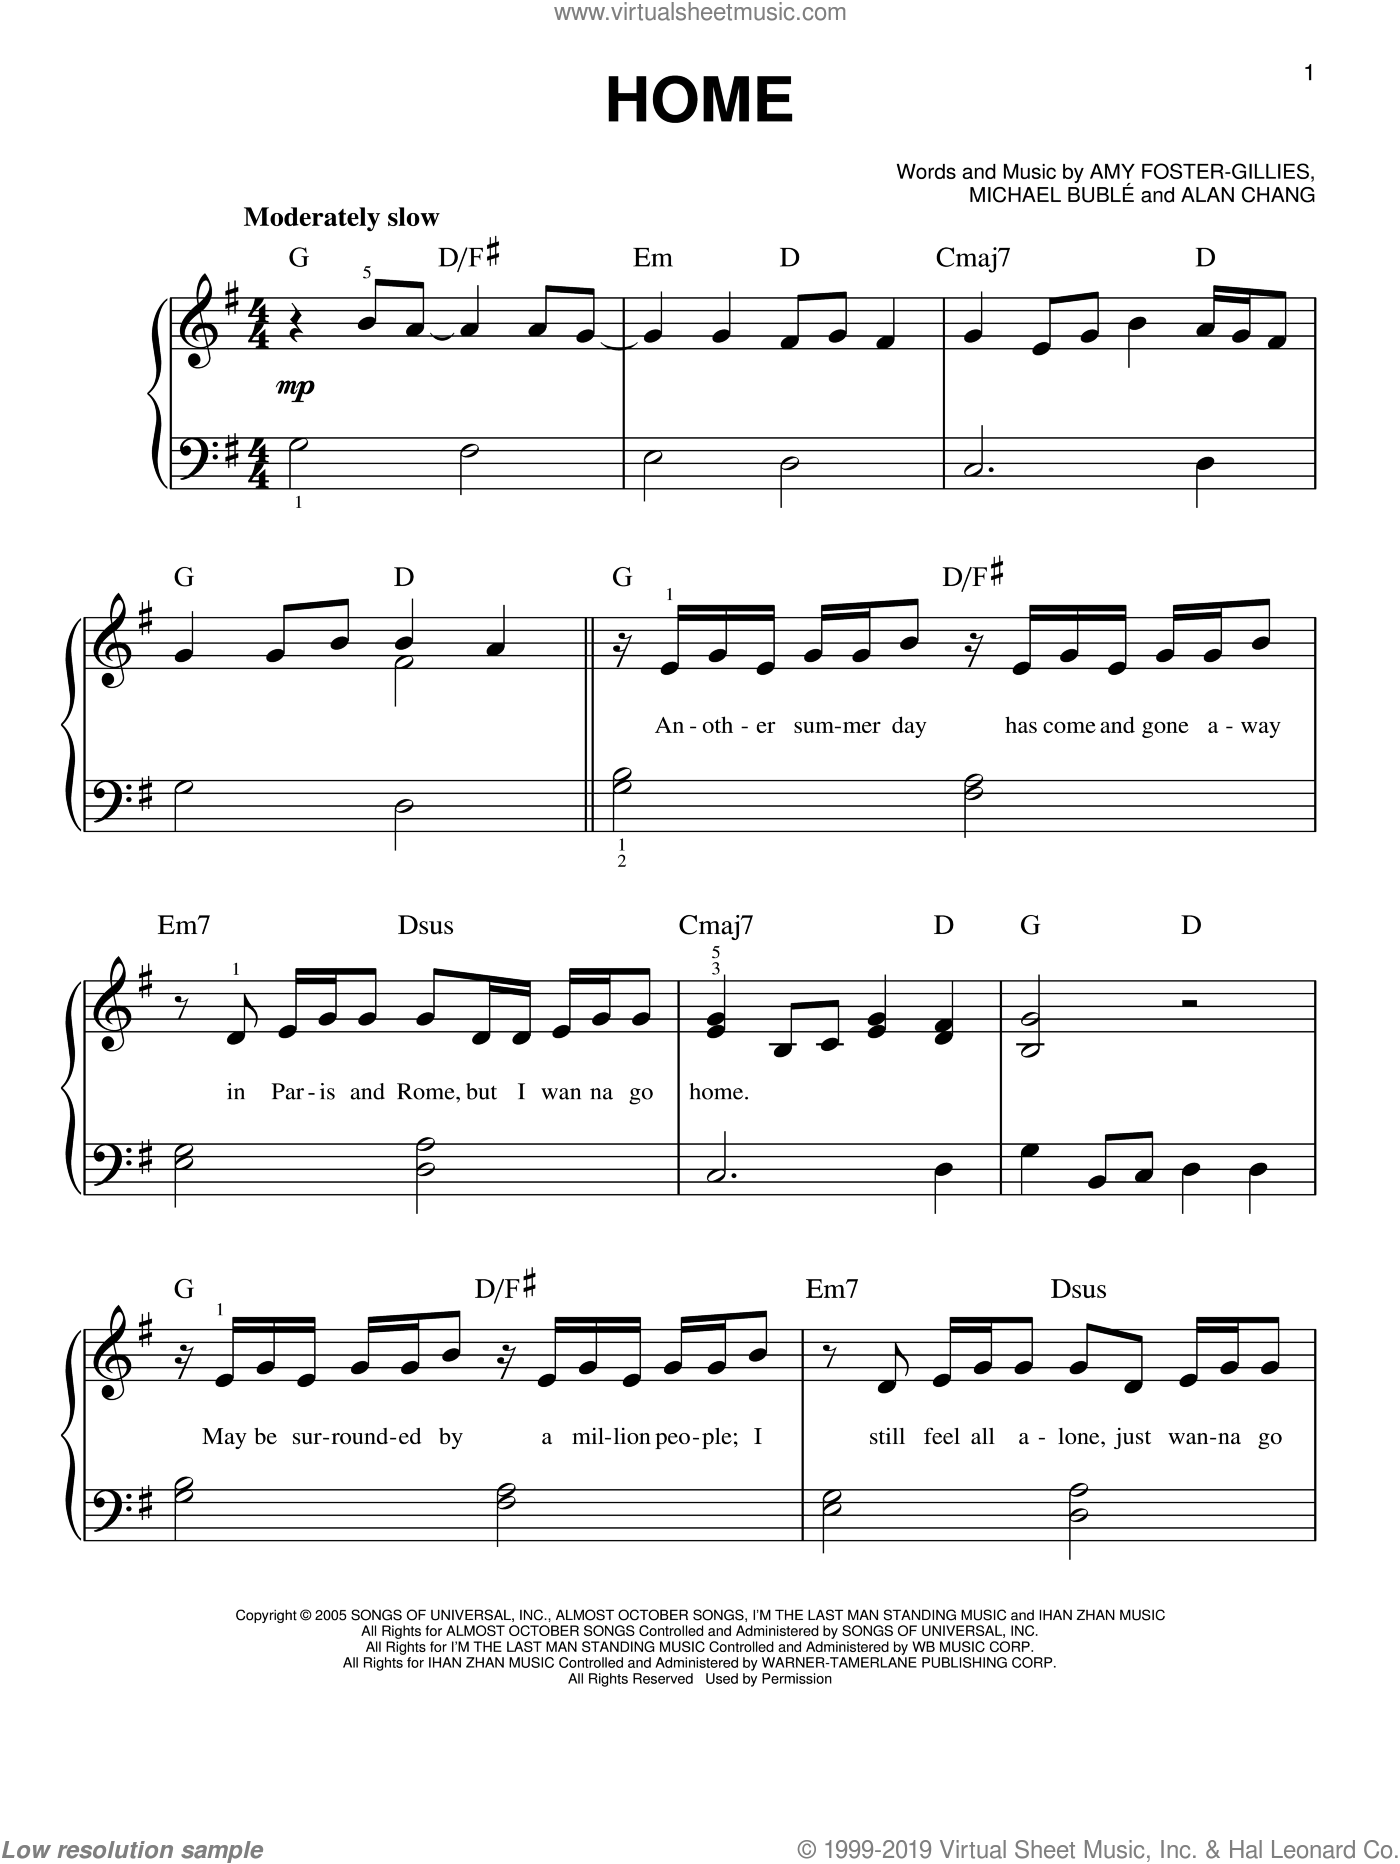 Home sheet music for piano solo by Michael Bublé, Blake Shelton, Westlife, Alan Chang, Amy Foster-Gillies and Michael Buble, easy. Score Image Preview.